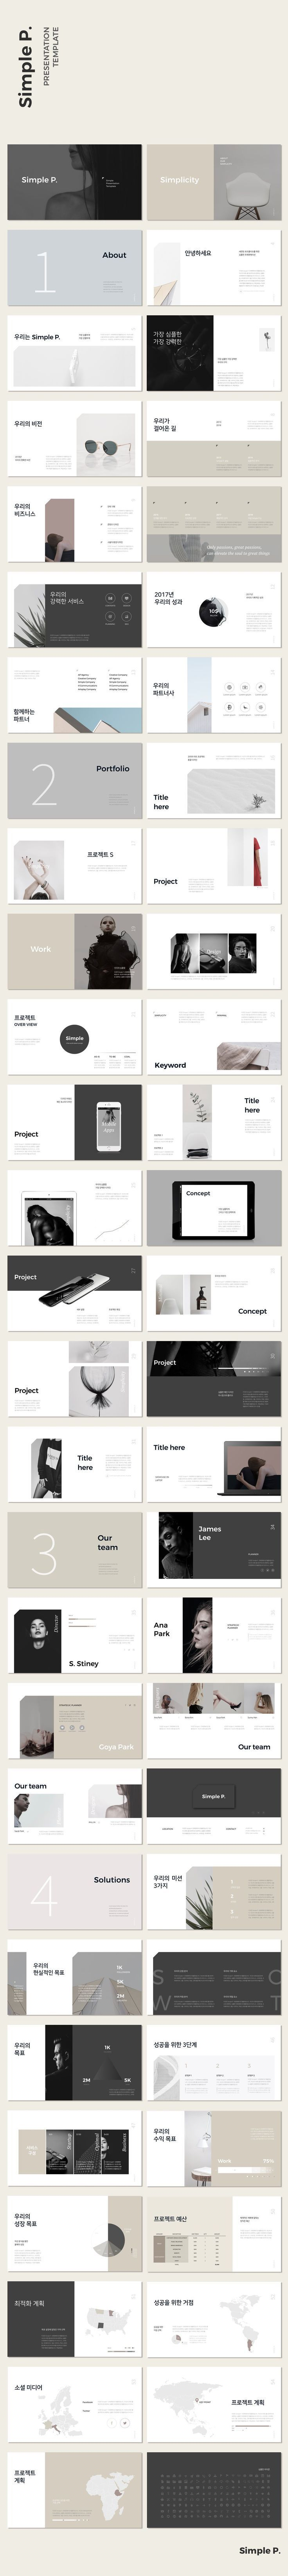 Simple P. PowerPoint Template | Template, Power point templates and ...